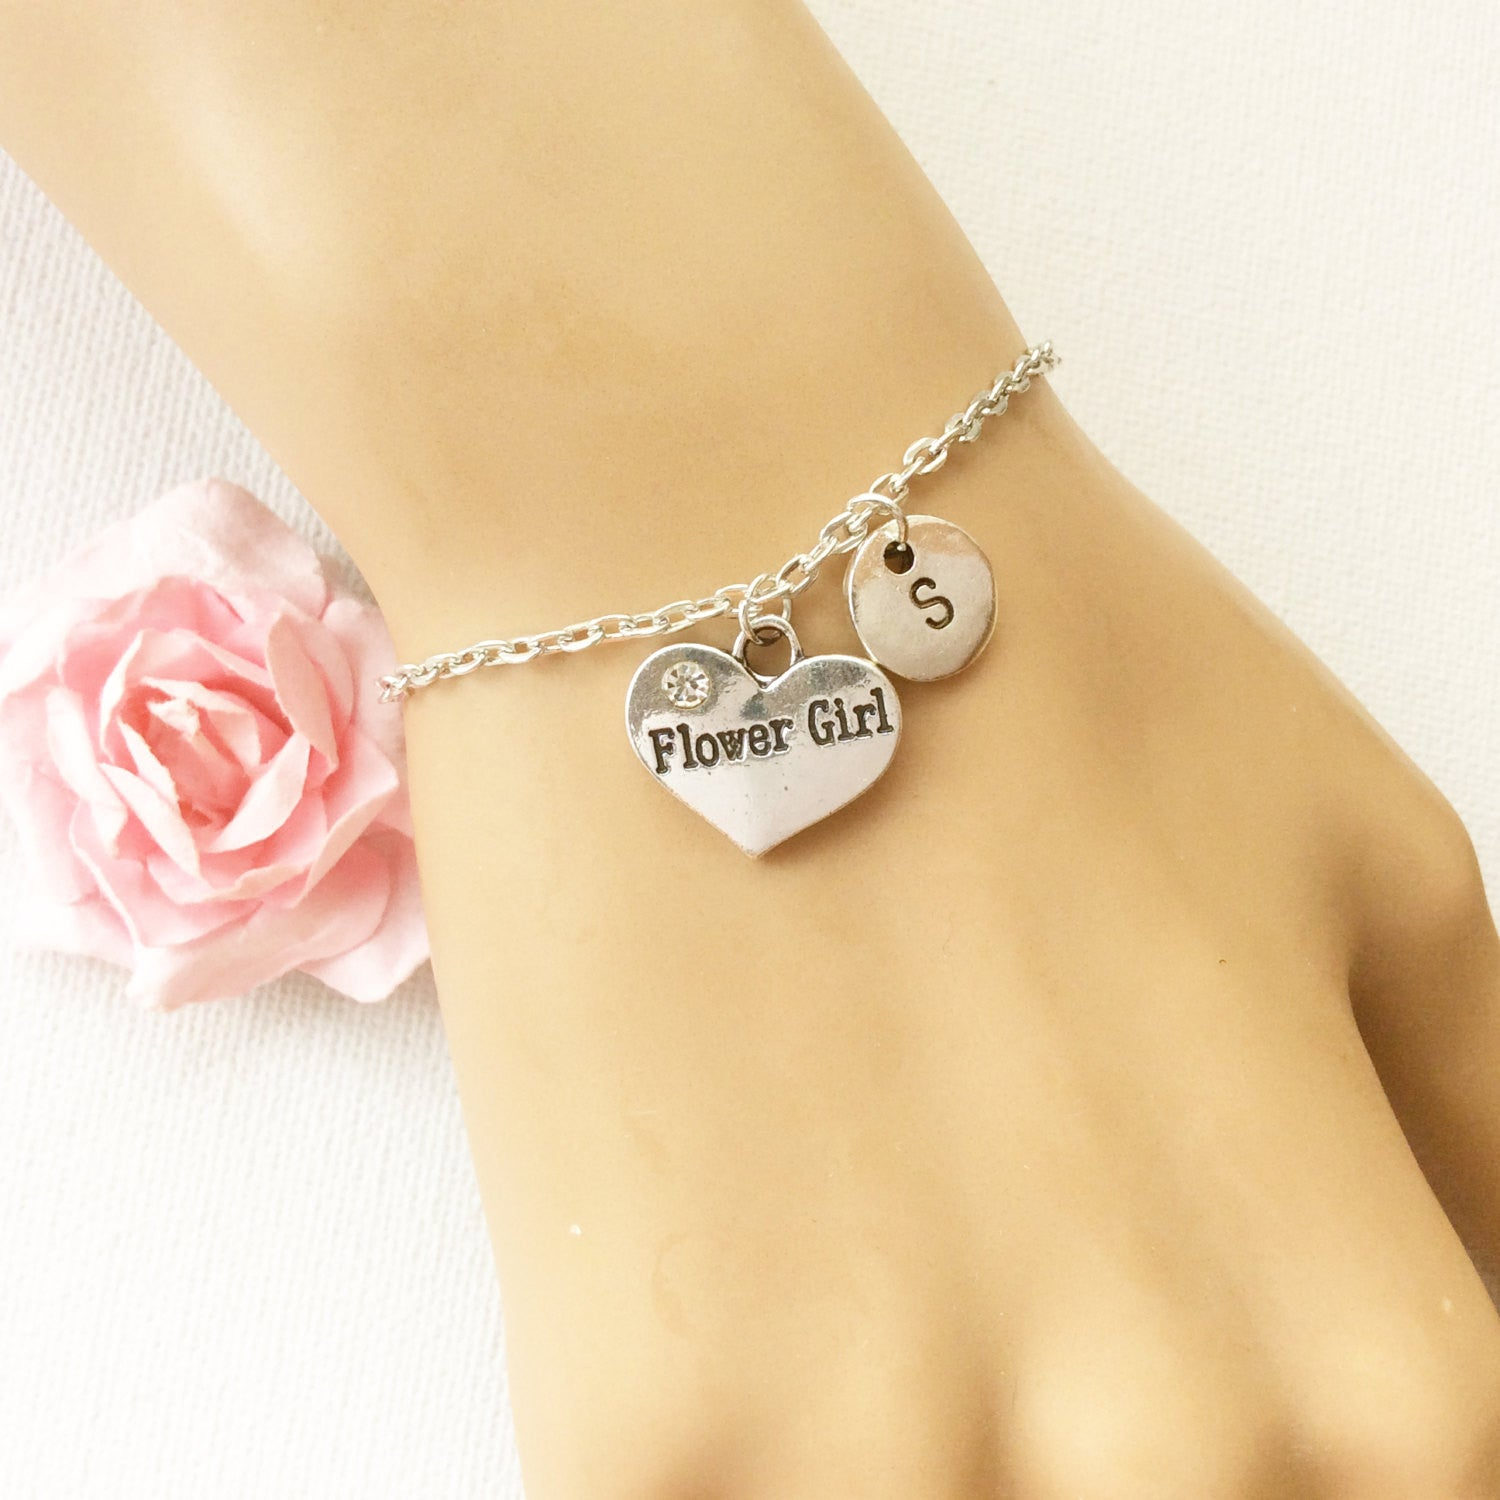 Silver flower girl bracelet, flower girl bracelet, flower girl jewellery, flower girl gift, wedding gift, bracelet for flower girl , Jewelry - Statement Made Jewelry, Statement Made Jewellery  - 1